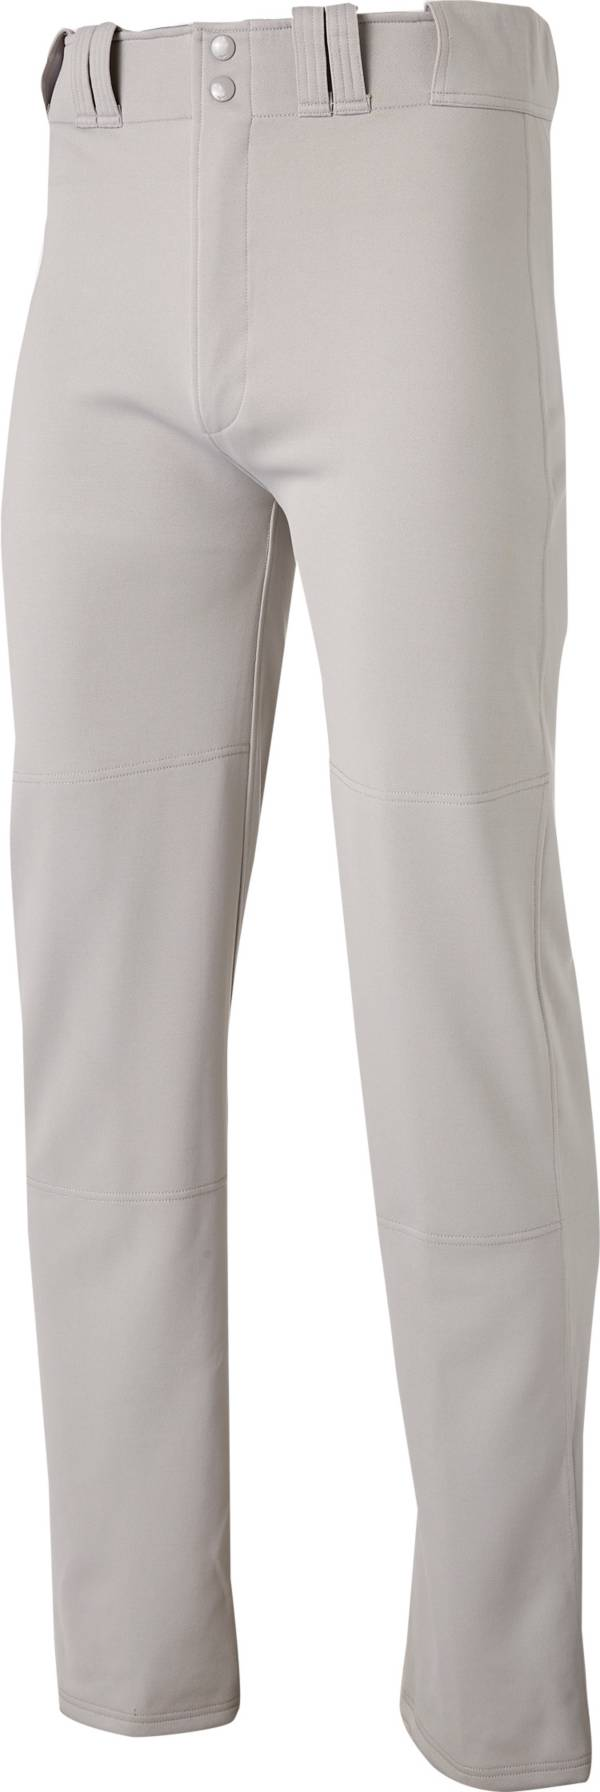 Mizuno Boys' MVP Pro Baseball Pants product image